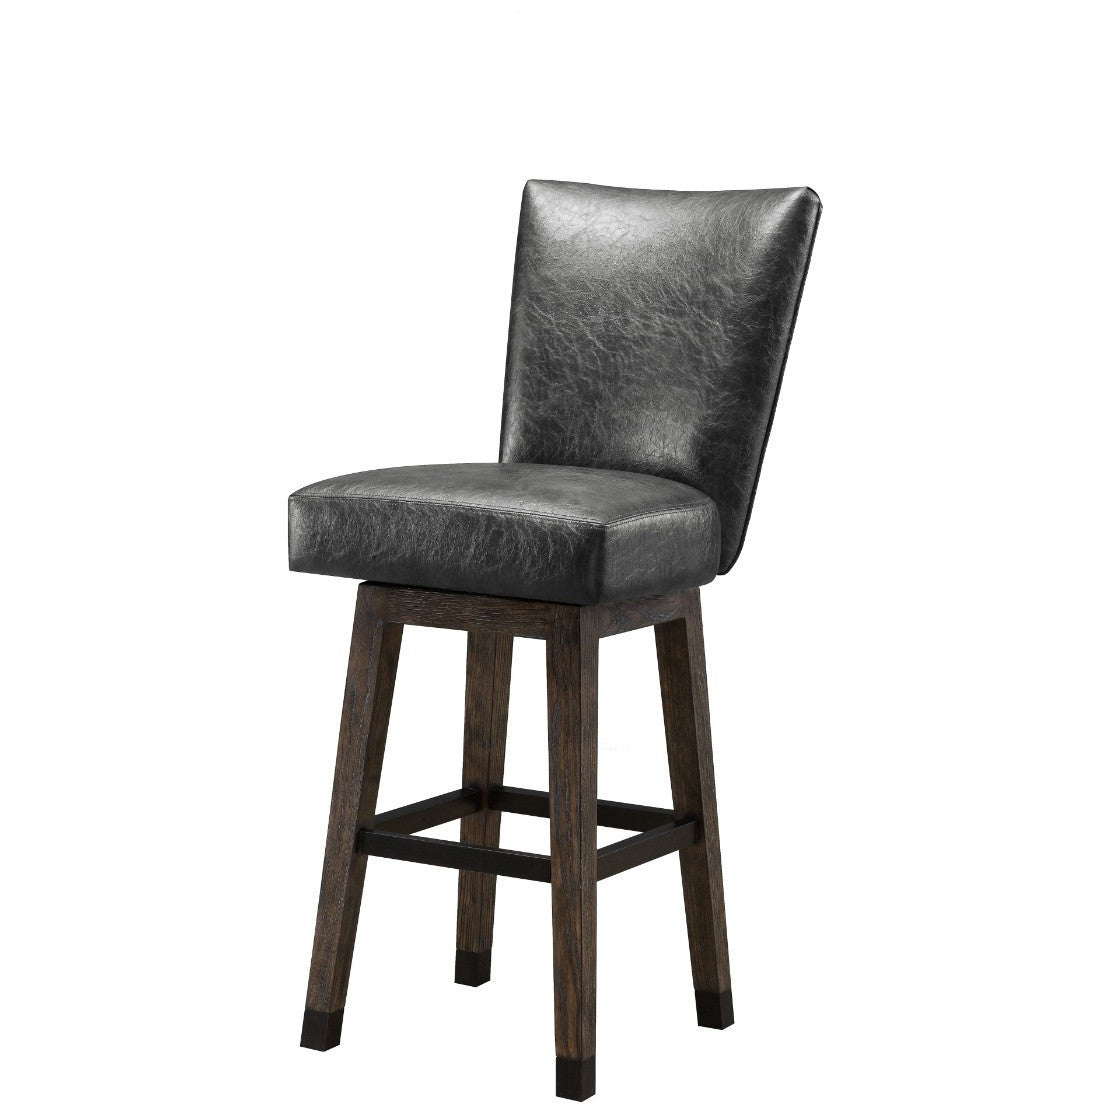 Signature rustic bar stool with back kitchen and bar stool legacy danny veghs